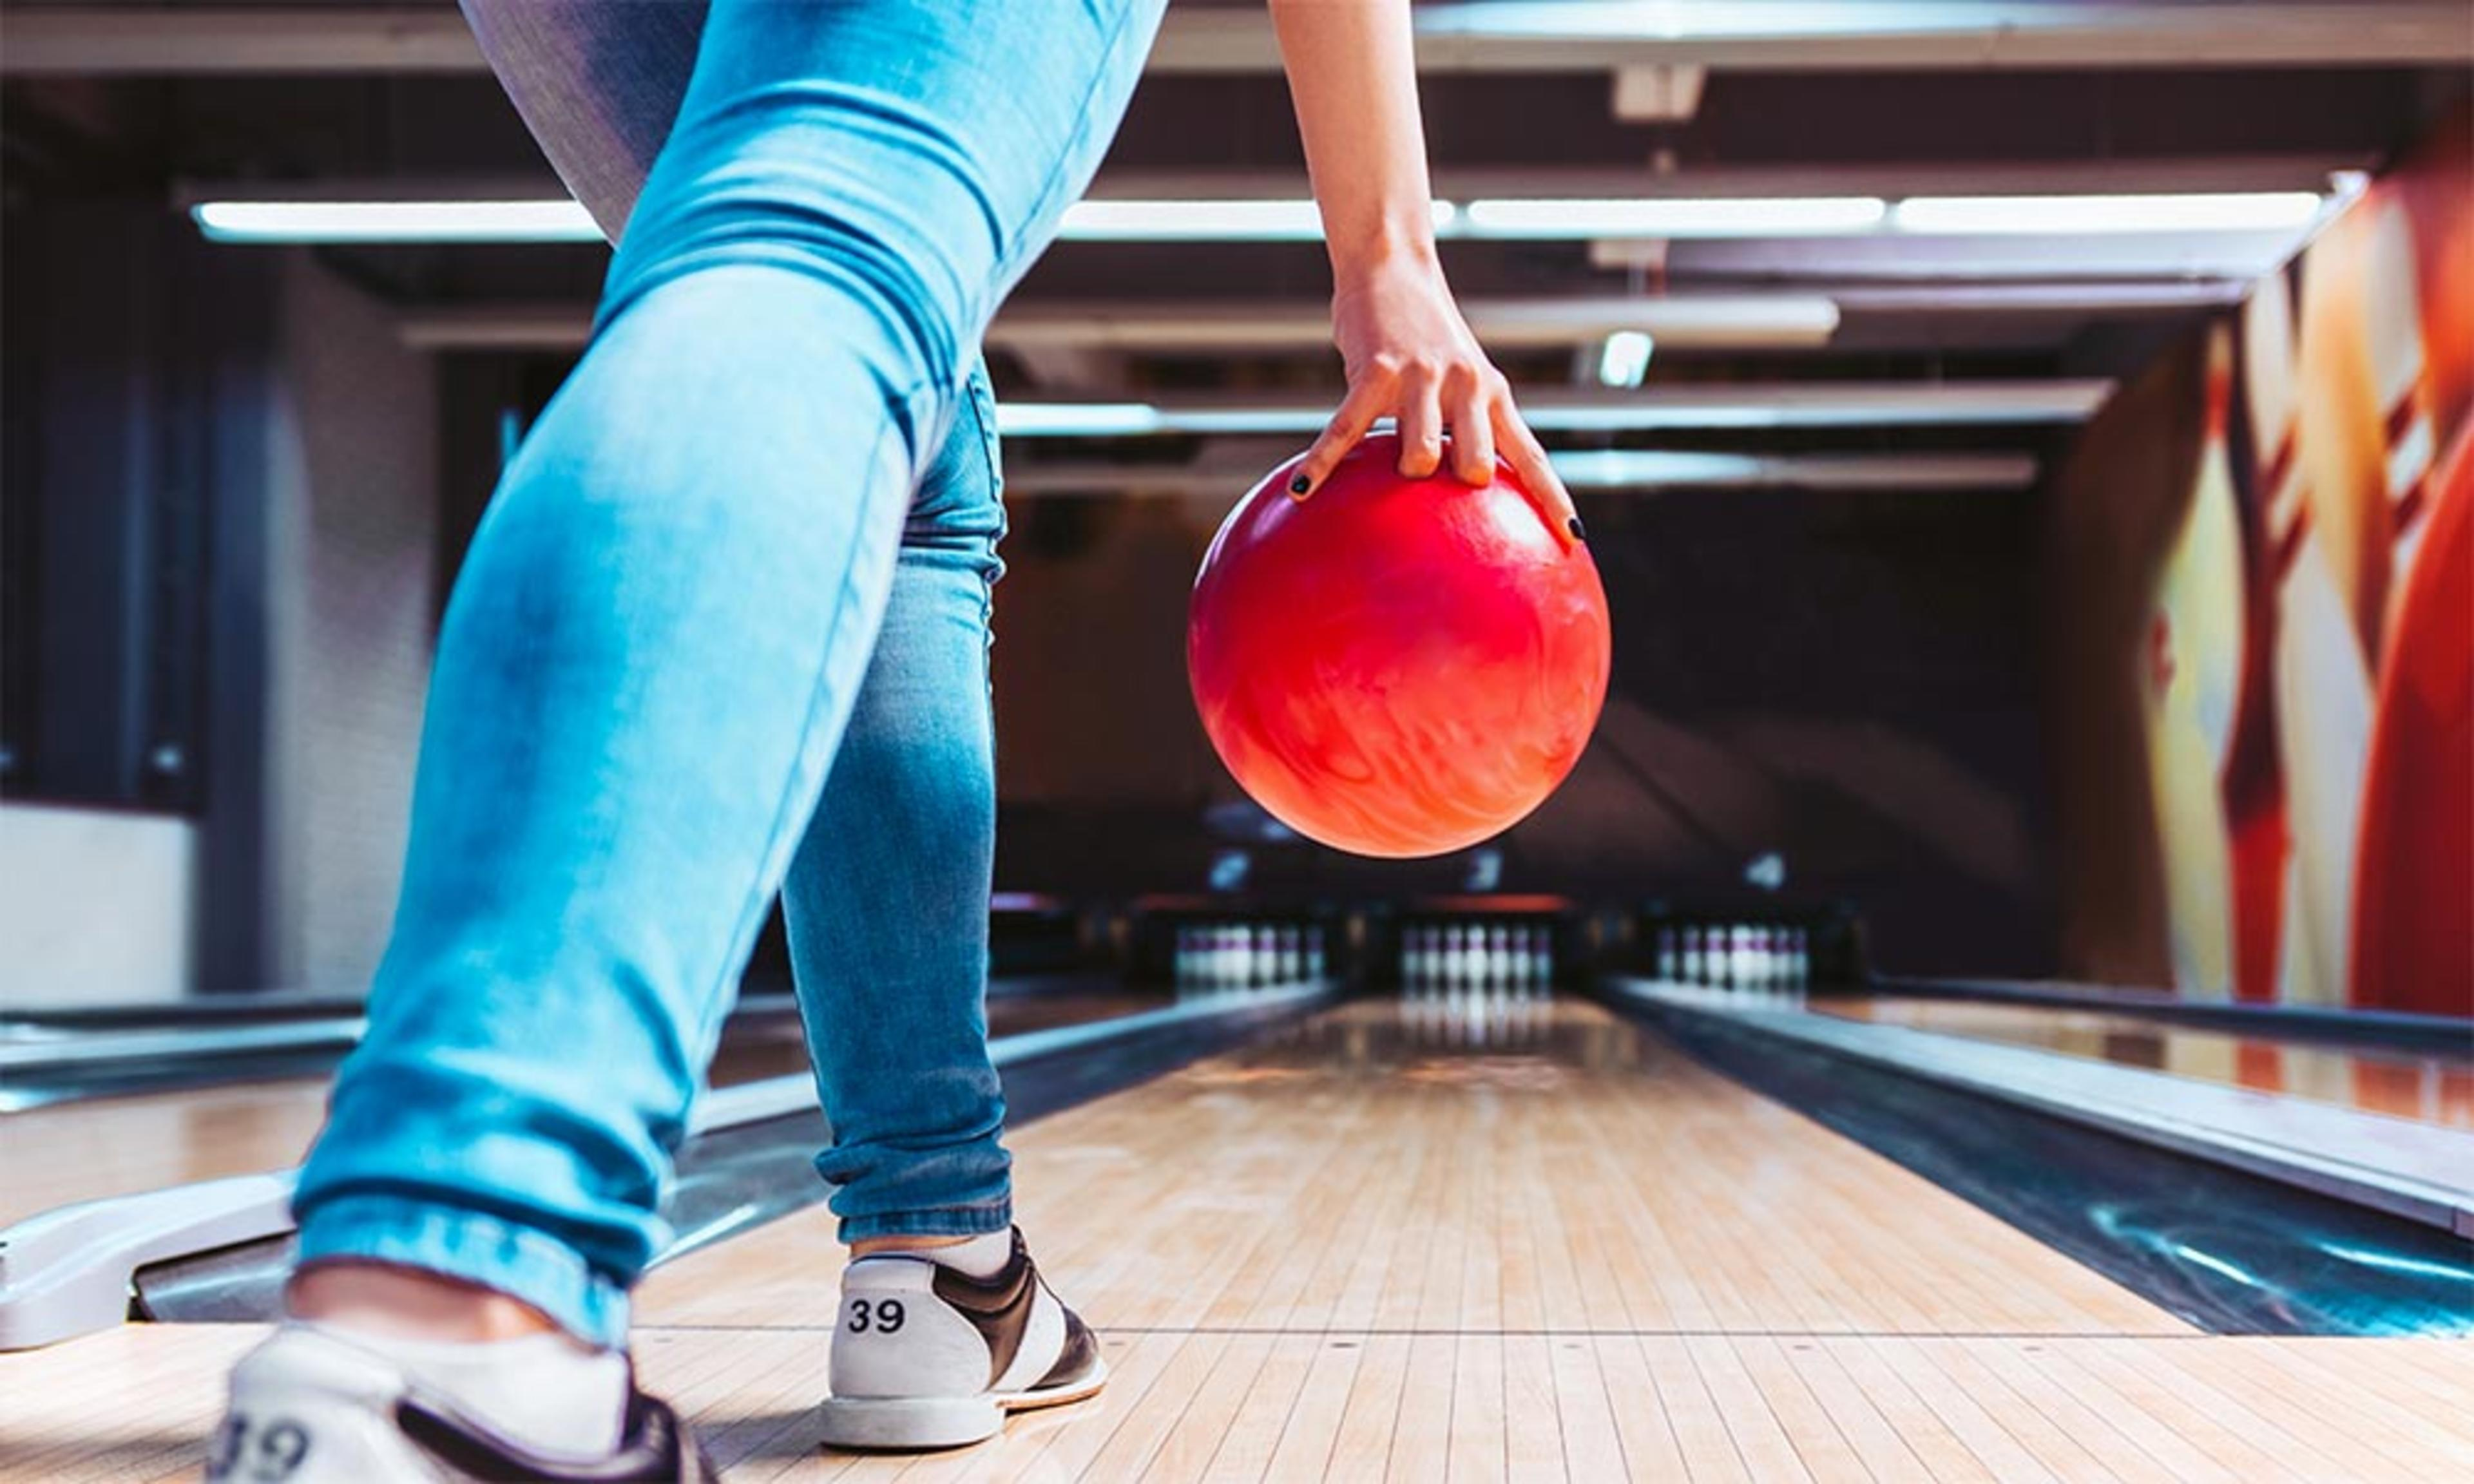 A woman in blue jeans ten-pin bowling with a red bowling ball